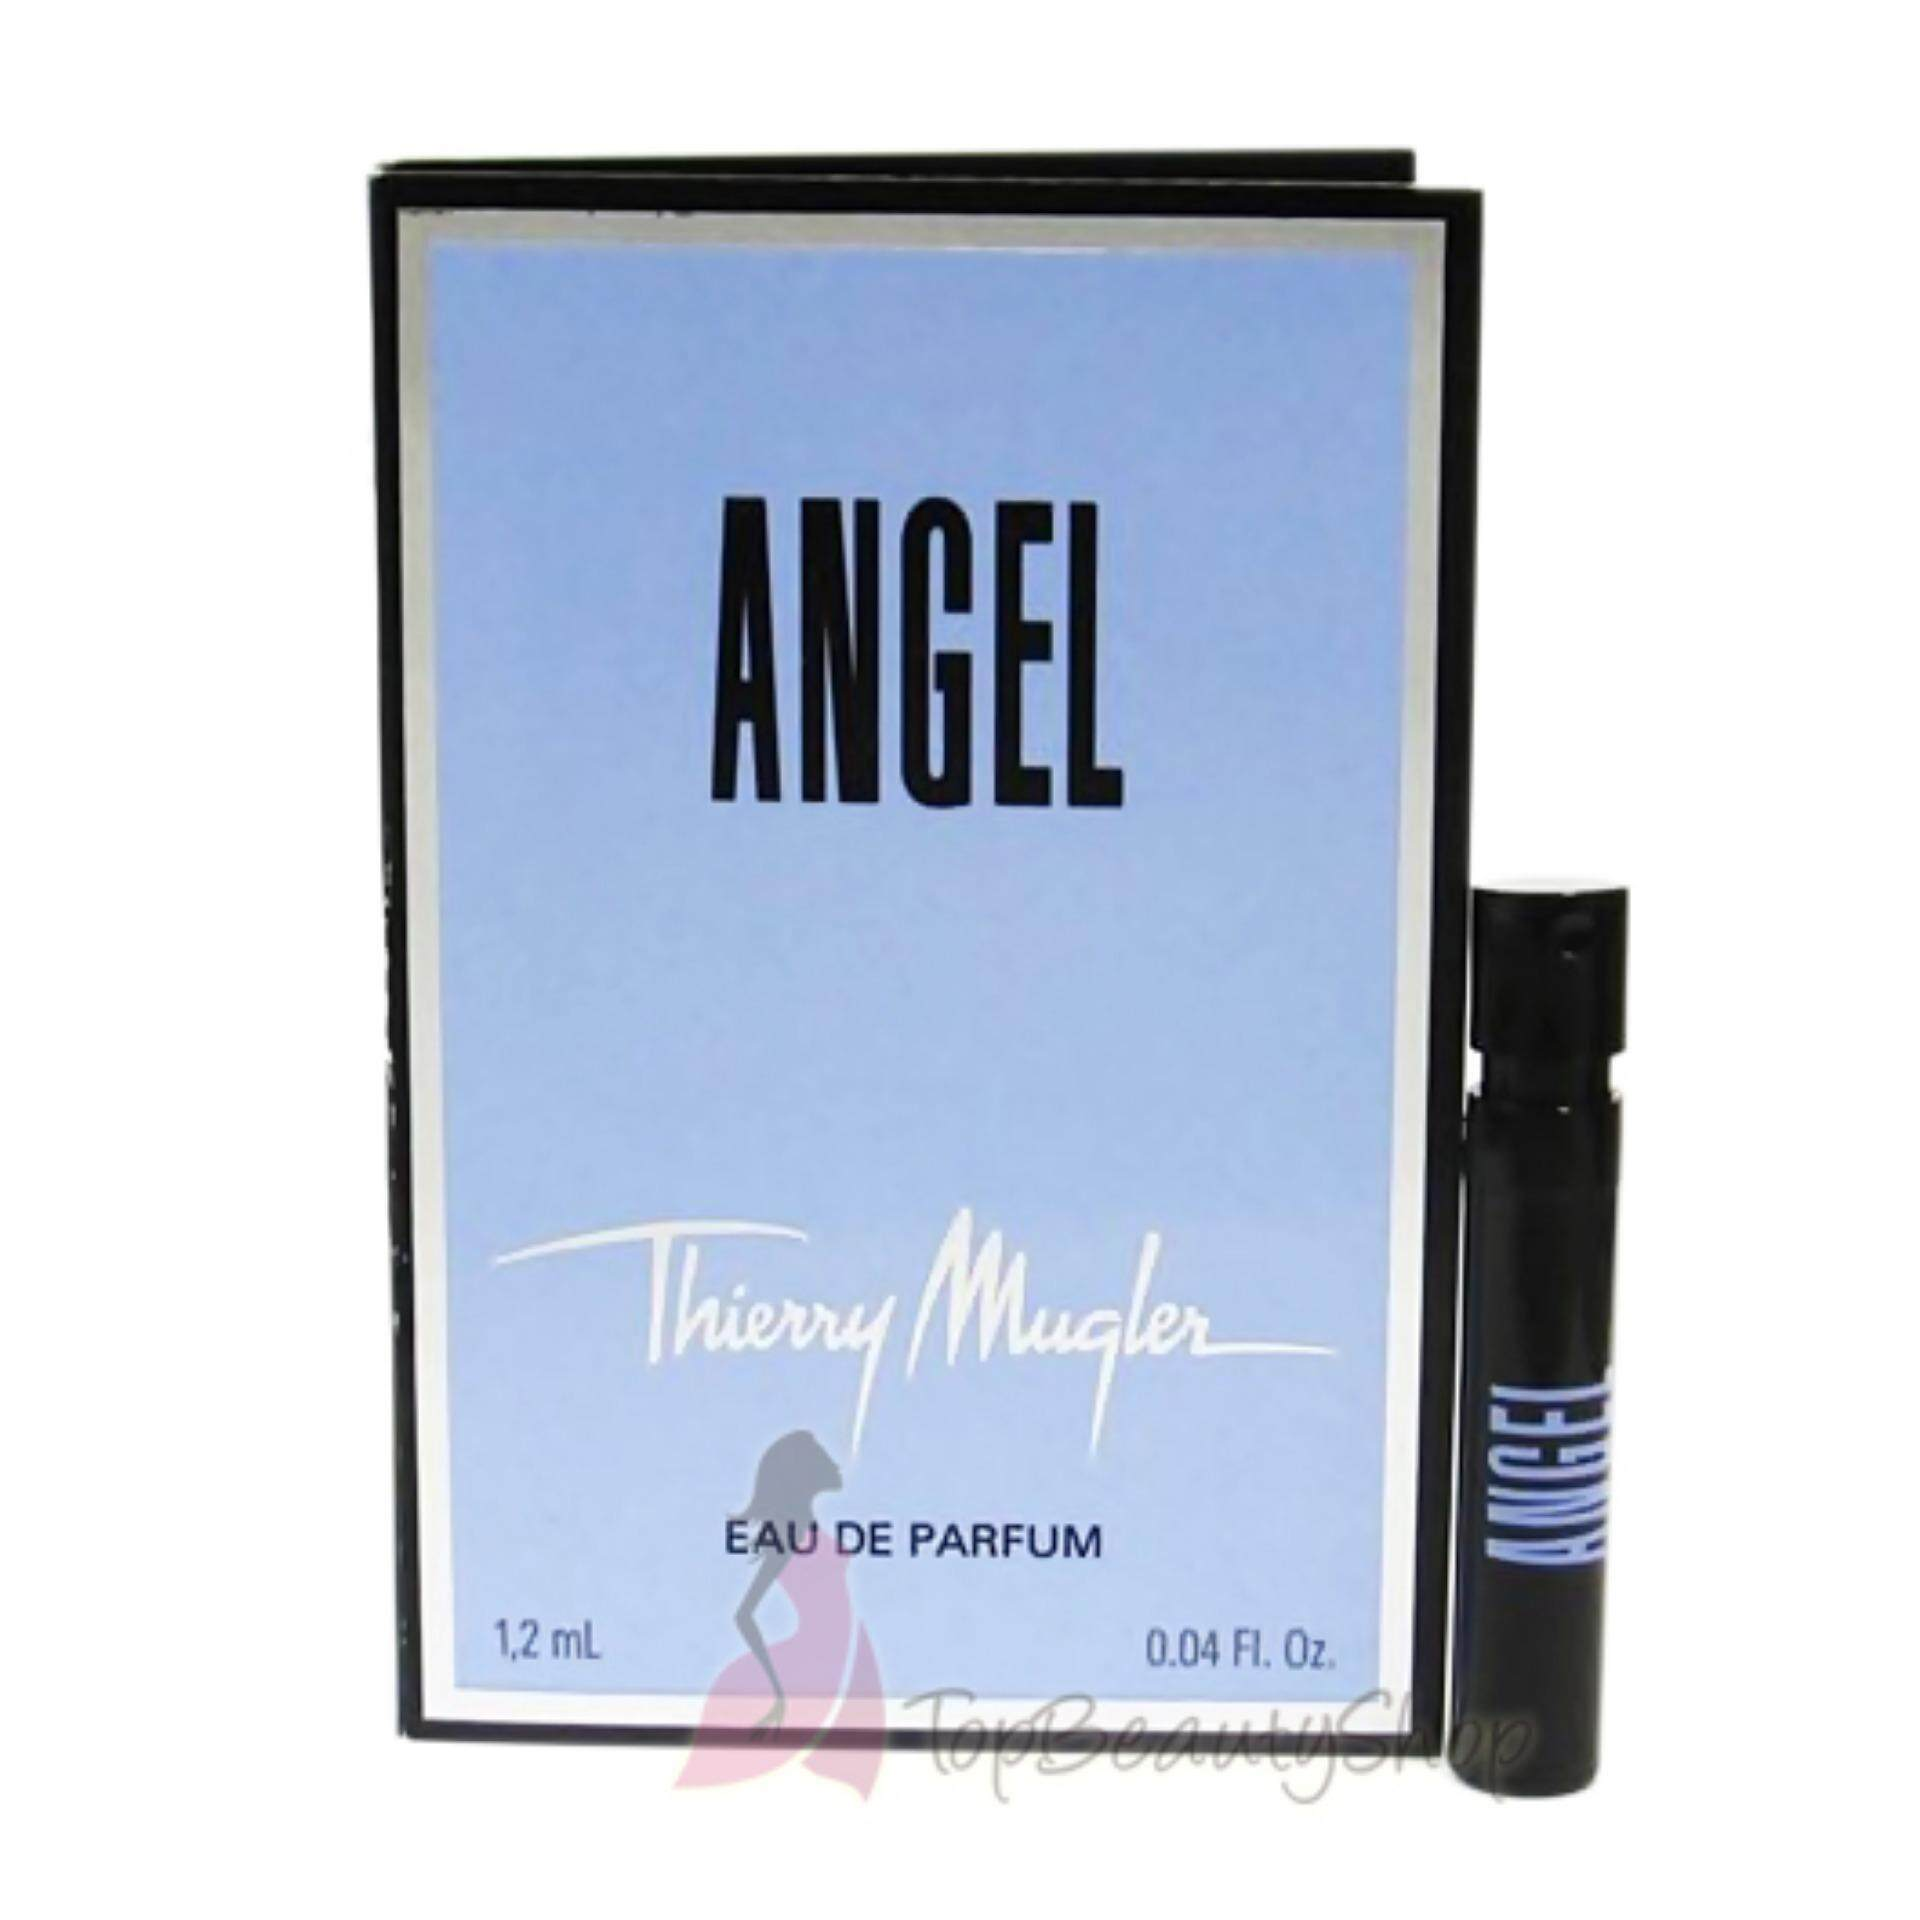 Thierry Mugler Angel EDP 1.2 ml.